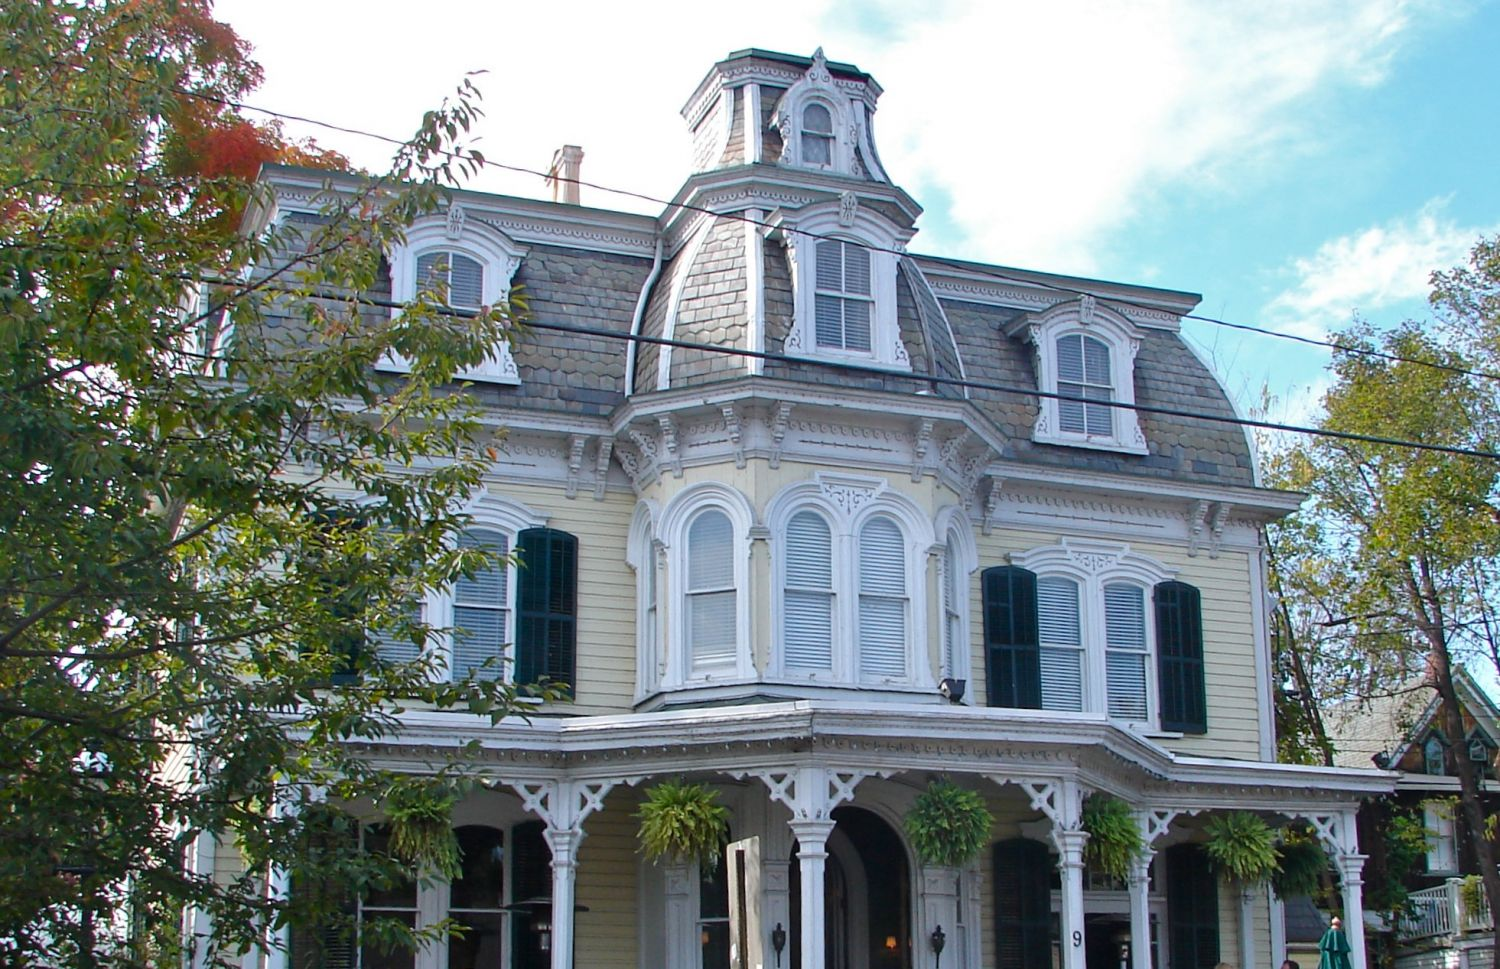 New Hope - Mansion Inn - Photo Credit: Smallbones [Public domain], from Wikimedia Commons